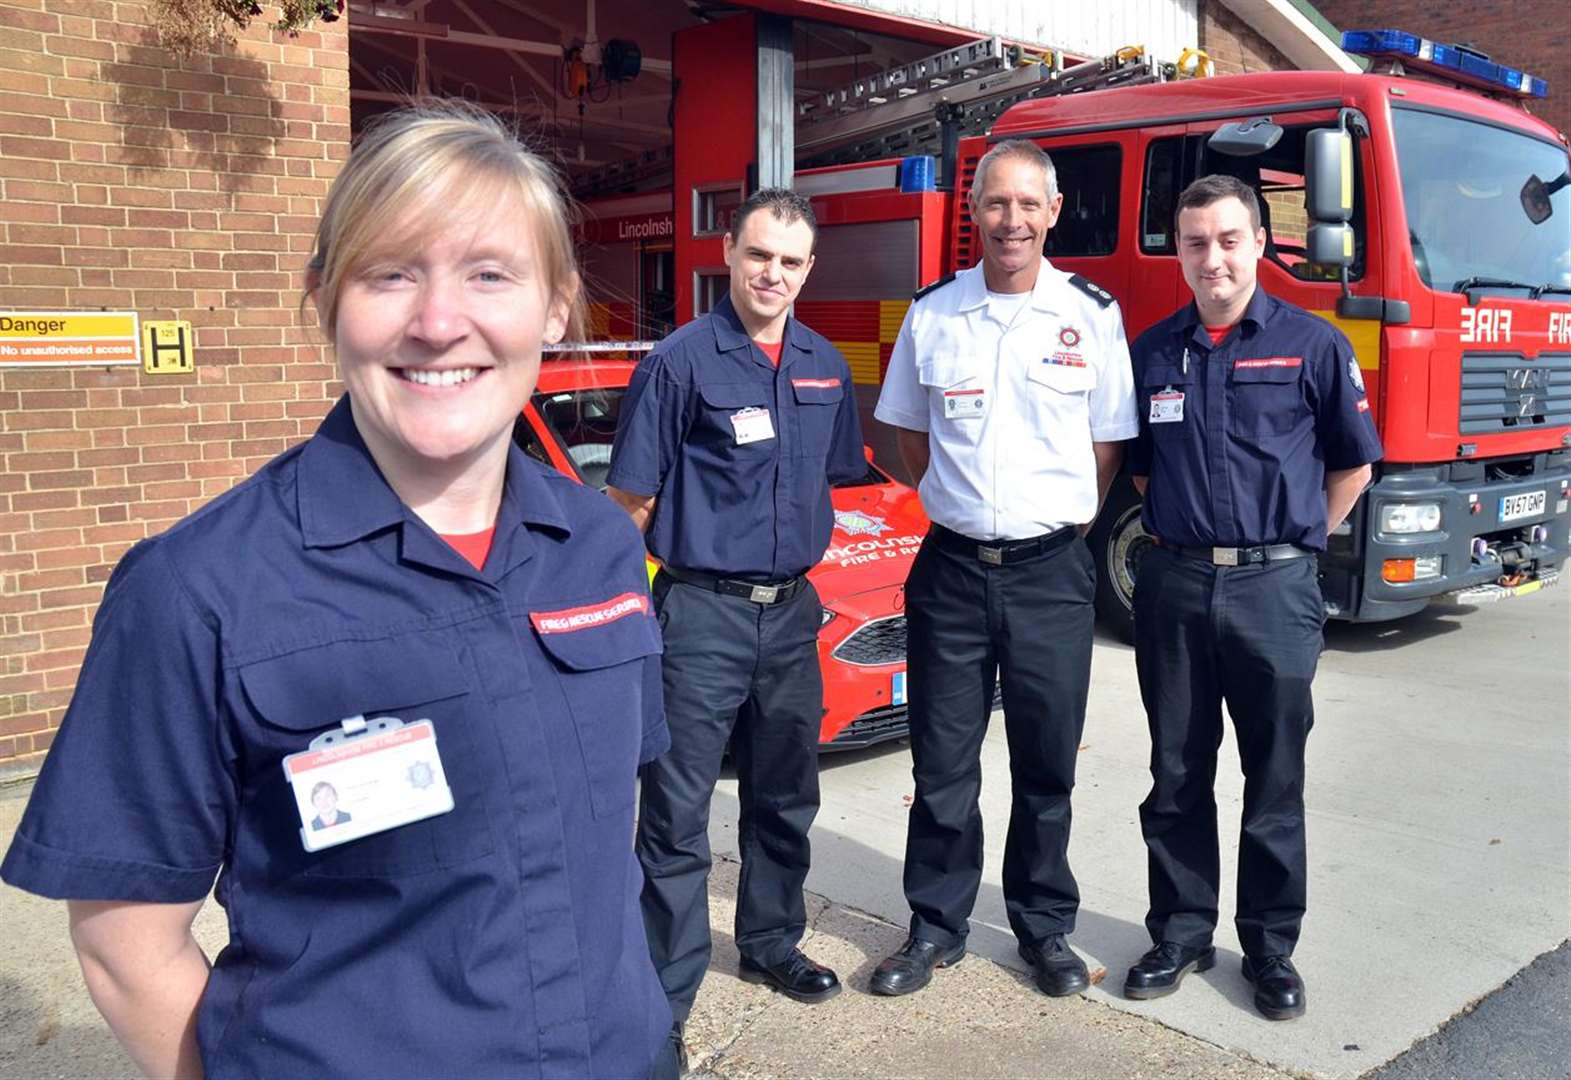 Amy sets the gold standard as firefighter in Donington